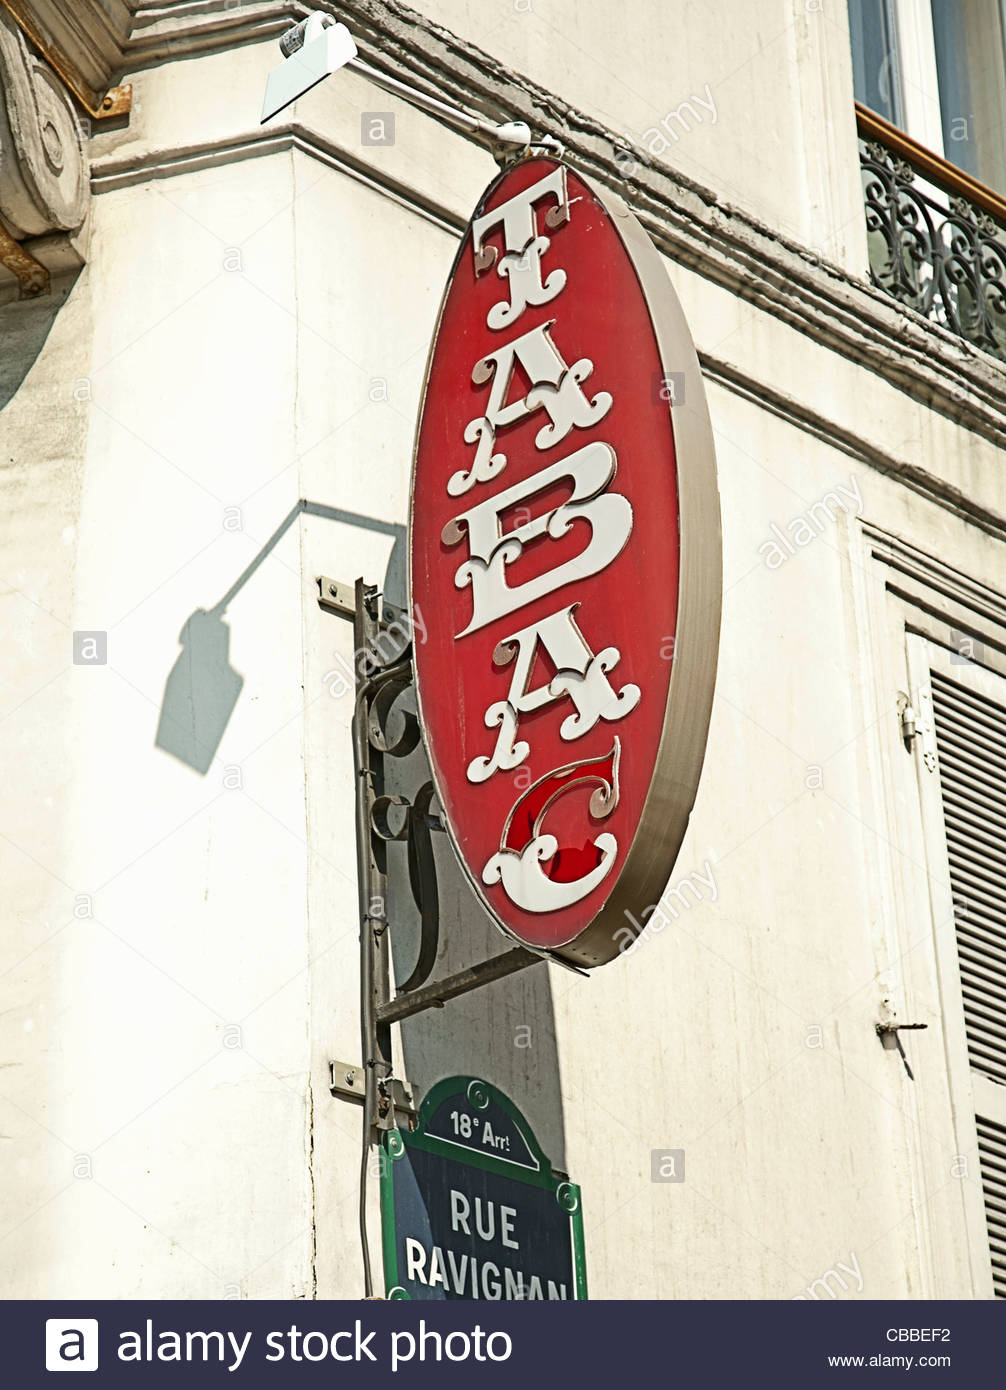 Tabac sign on French street - Stock Image